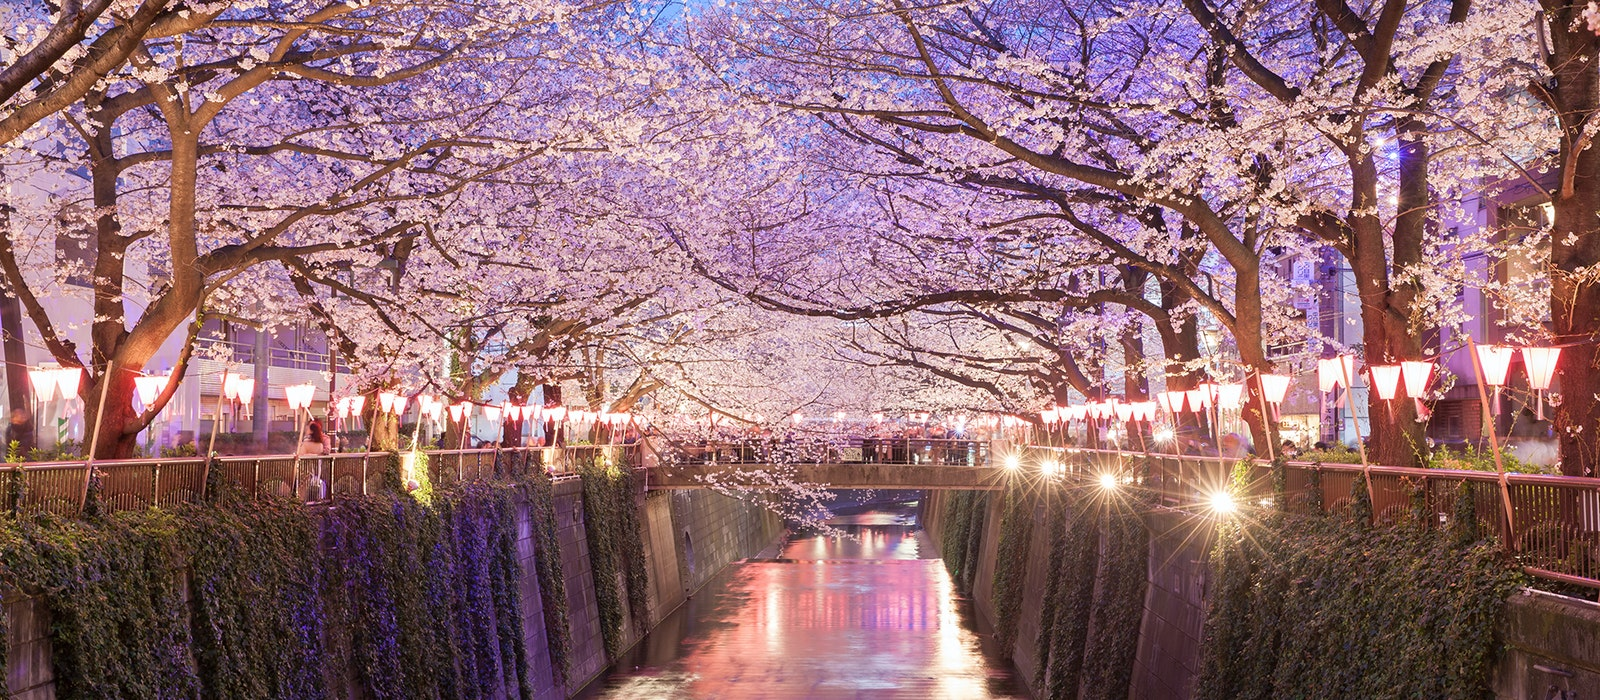 While cherry blossoms can be seen elsewhere in the city, the nighttime reflection of the trees along the Meguro River adds extra magic.